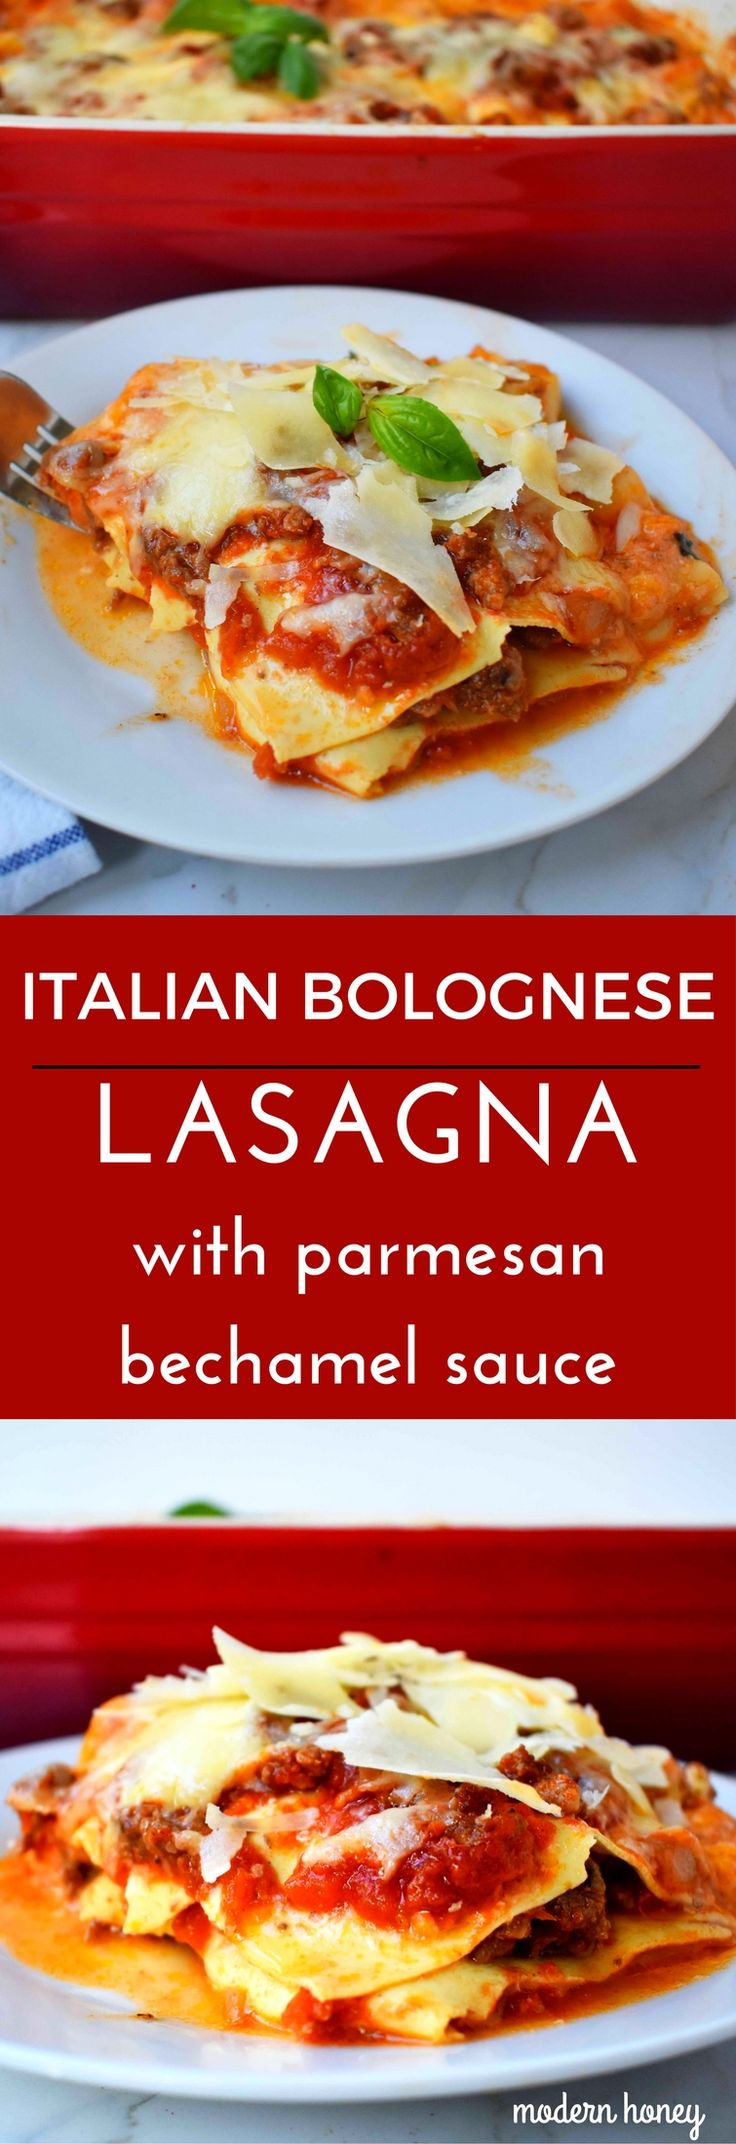 Italian Lasagna Bolognese made from scratch. Parmesan Cheese Bechamel Cream Sauce and Rich Homemade Bolognese Marinara Sauce make this lasagna rich and creamy. A family favorite and everyone begs for the recipe! www.modernhoney.com